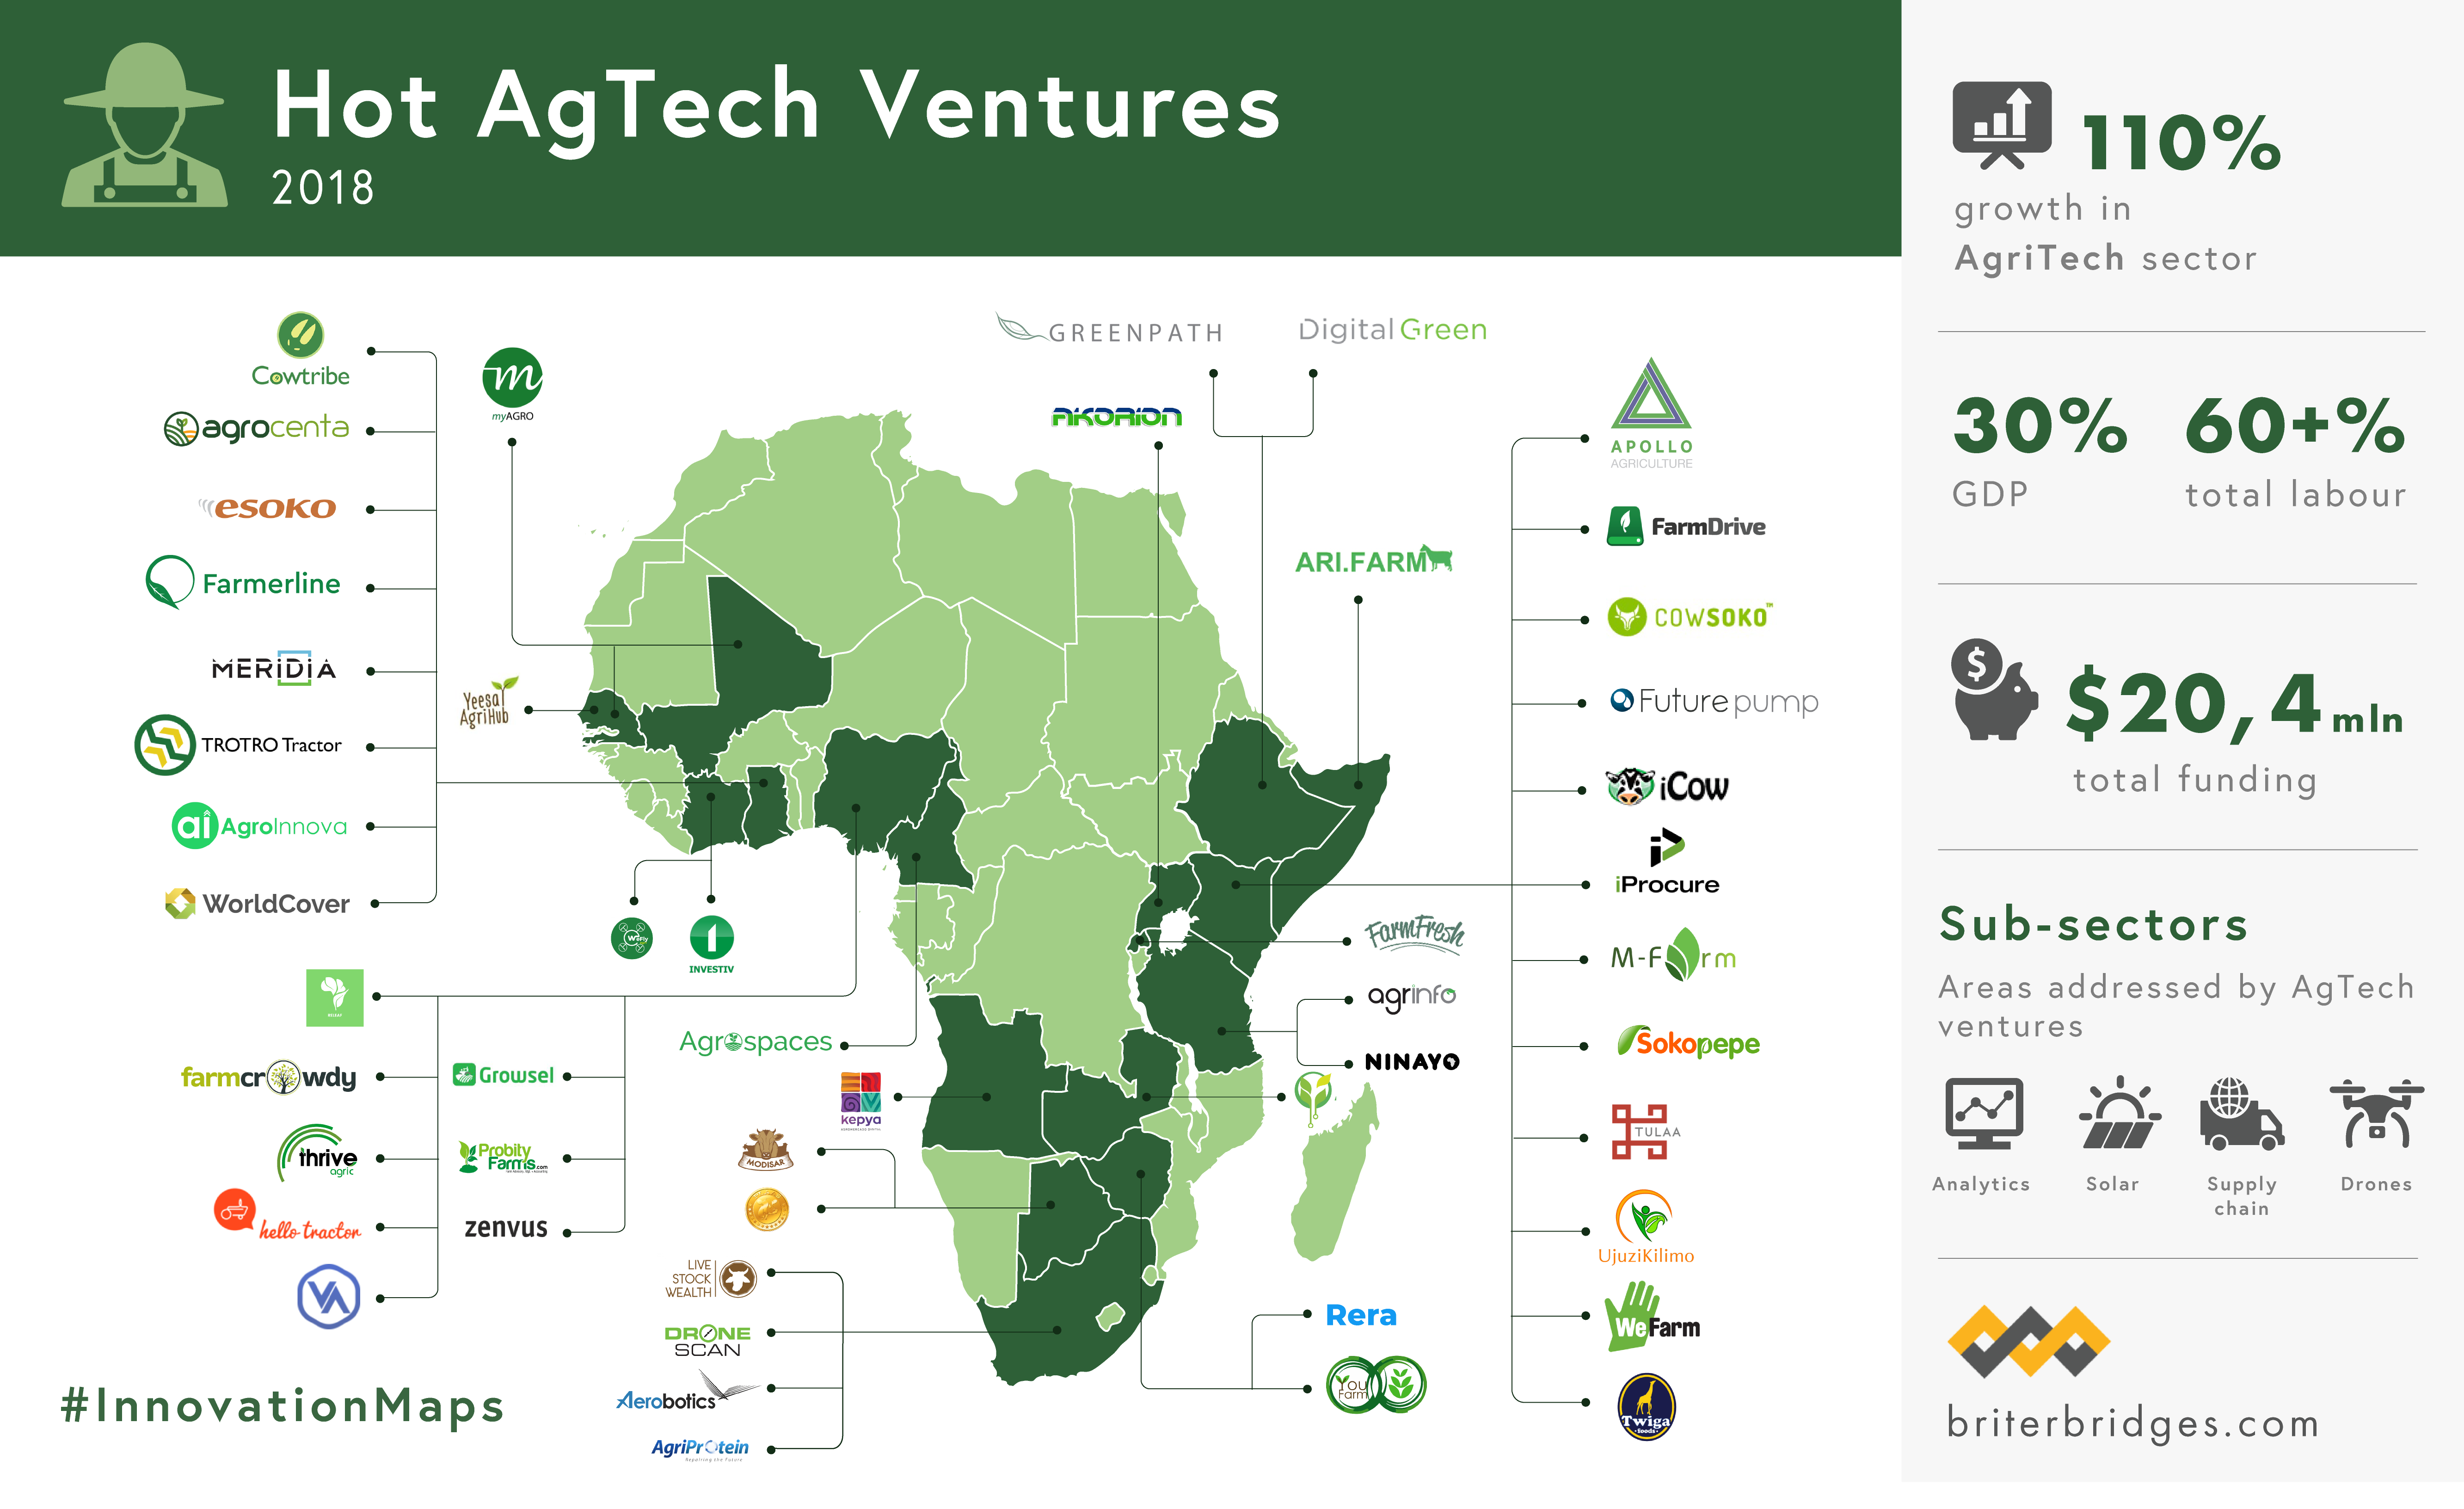 Africa's agtech wave gets $10 million richer as Twiga Foods